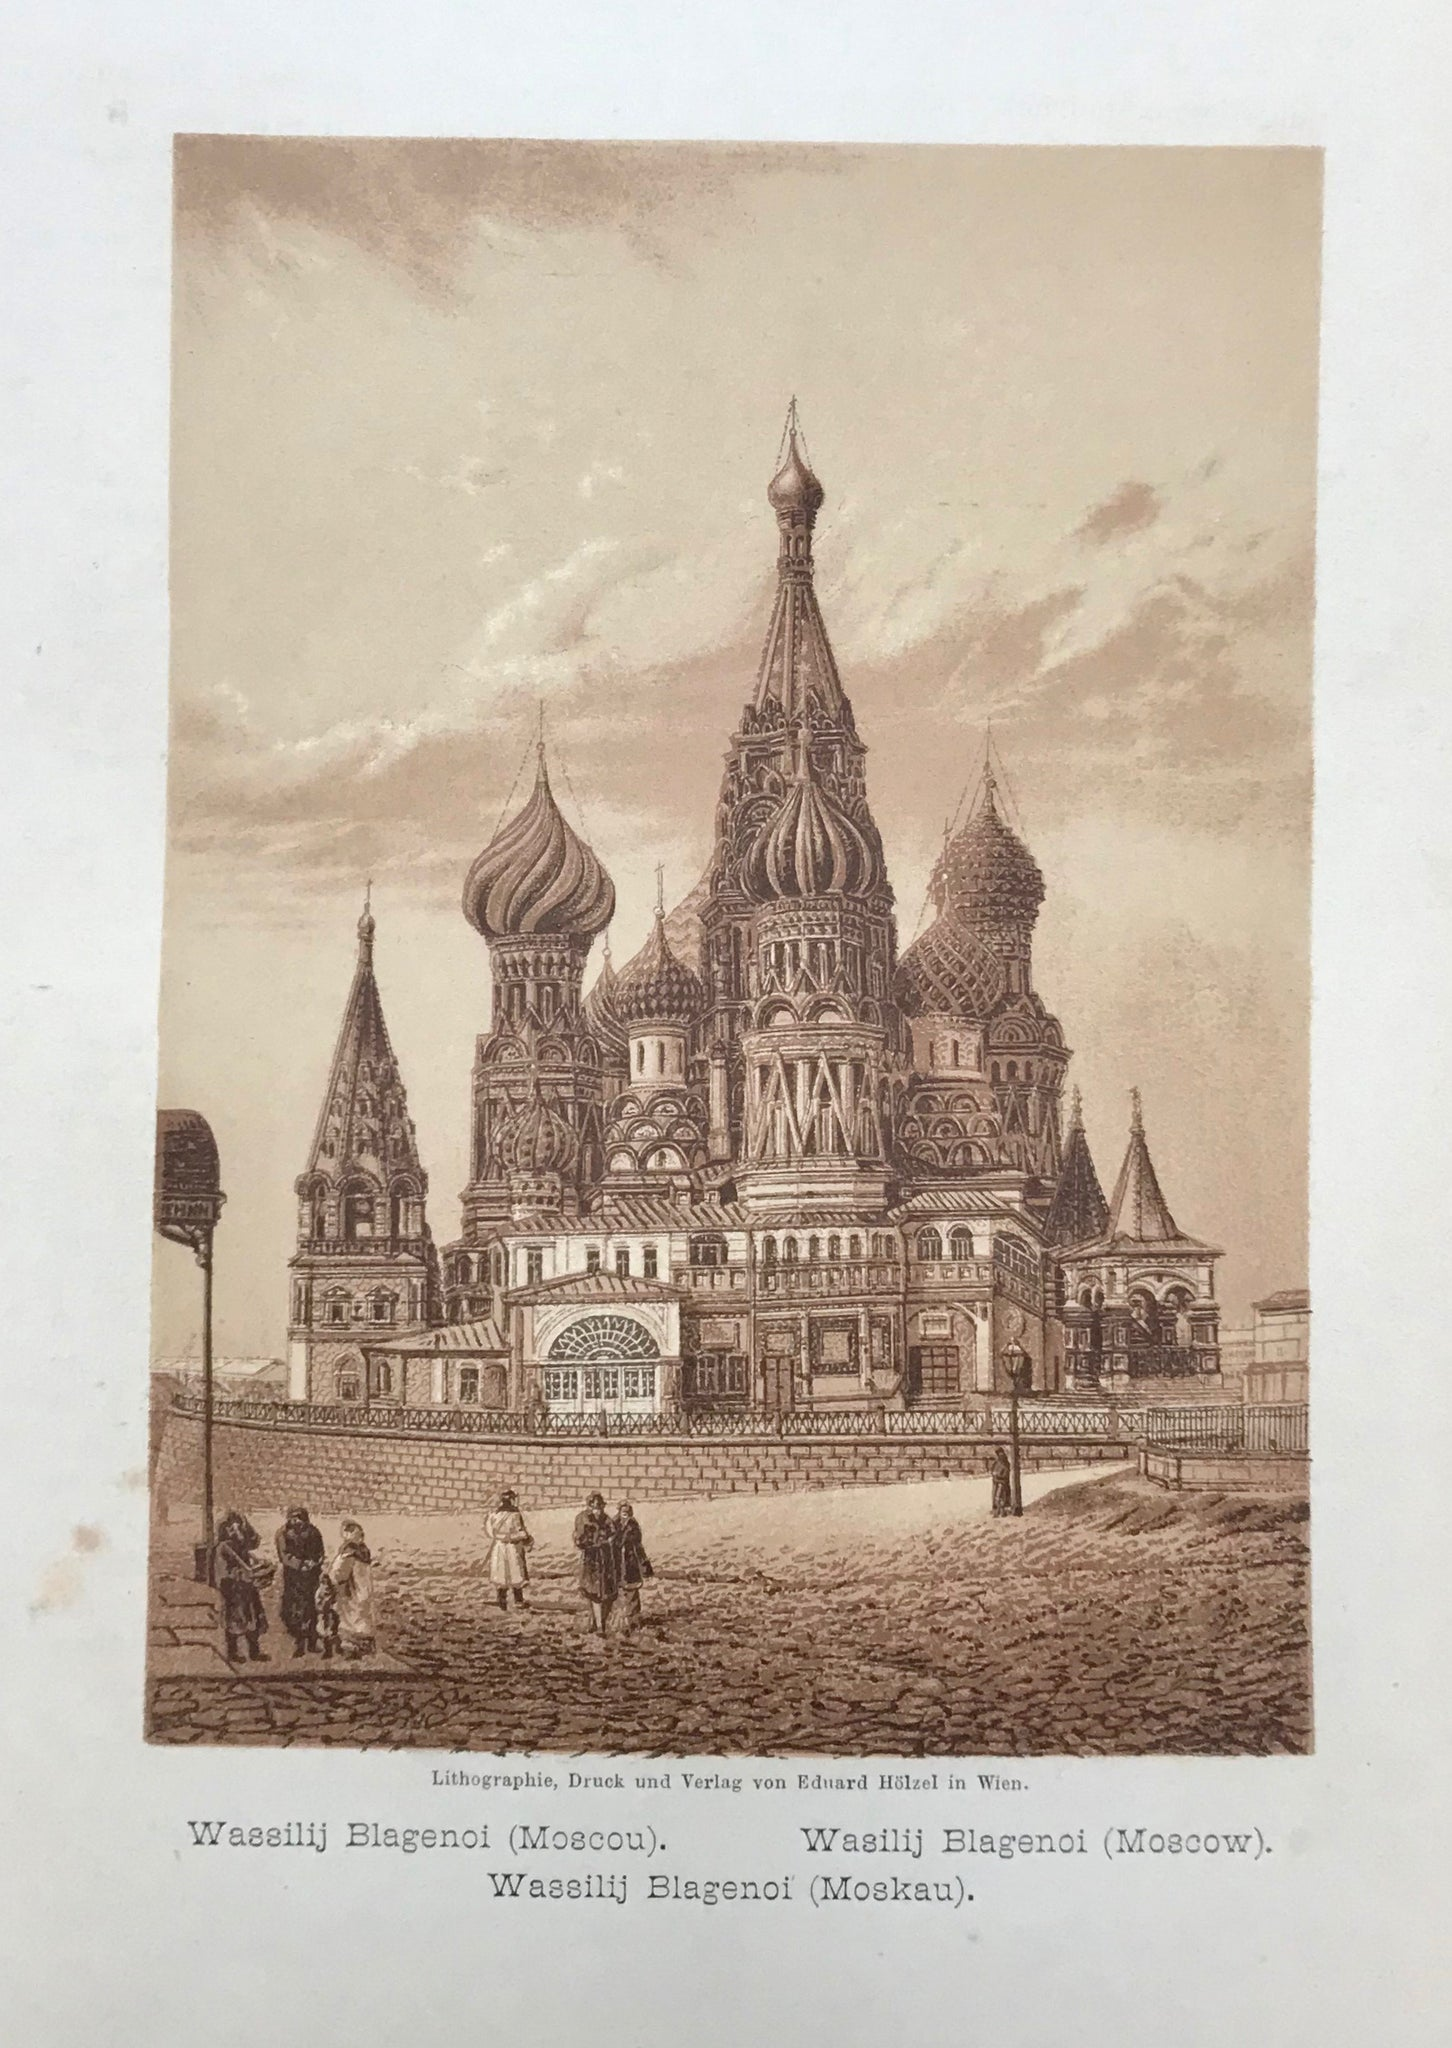 """Wassilij Blagenol (Moscou) Wasilij Blagenol Moscow)"" ""Wassilij Blagenol (Moskau)""  Anonymous lithograph printed in a very pleasant sepia tone. Published 1889. Included is an extra page of text in German about the church of Wassilij Blagenol."